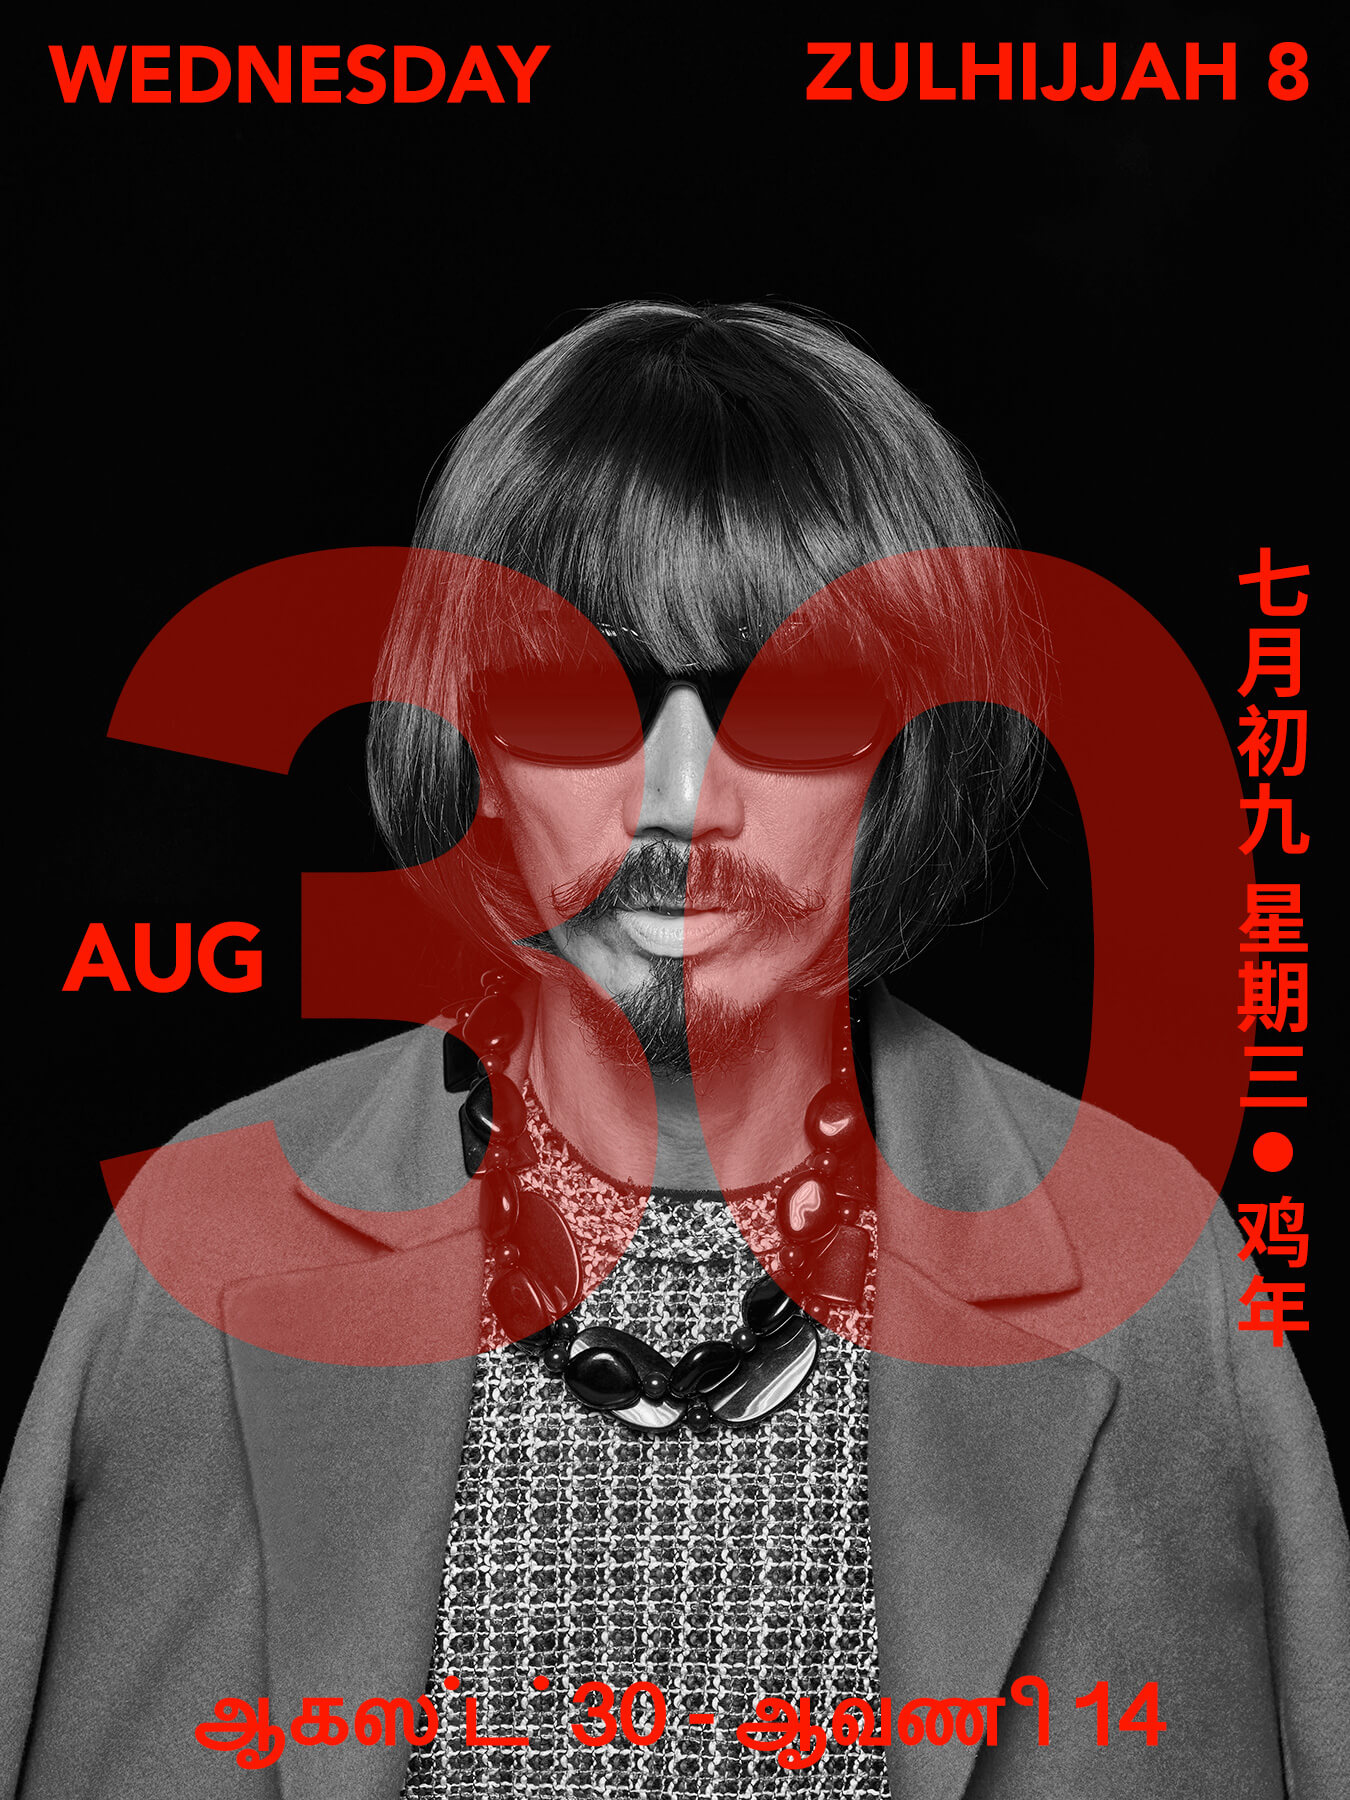 30 Aug 2017: Derong is styled as Anna Wintour